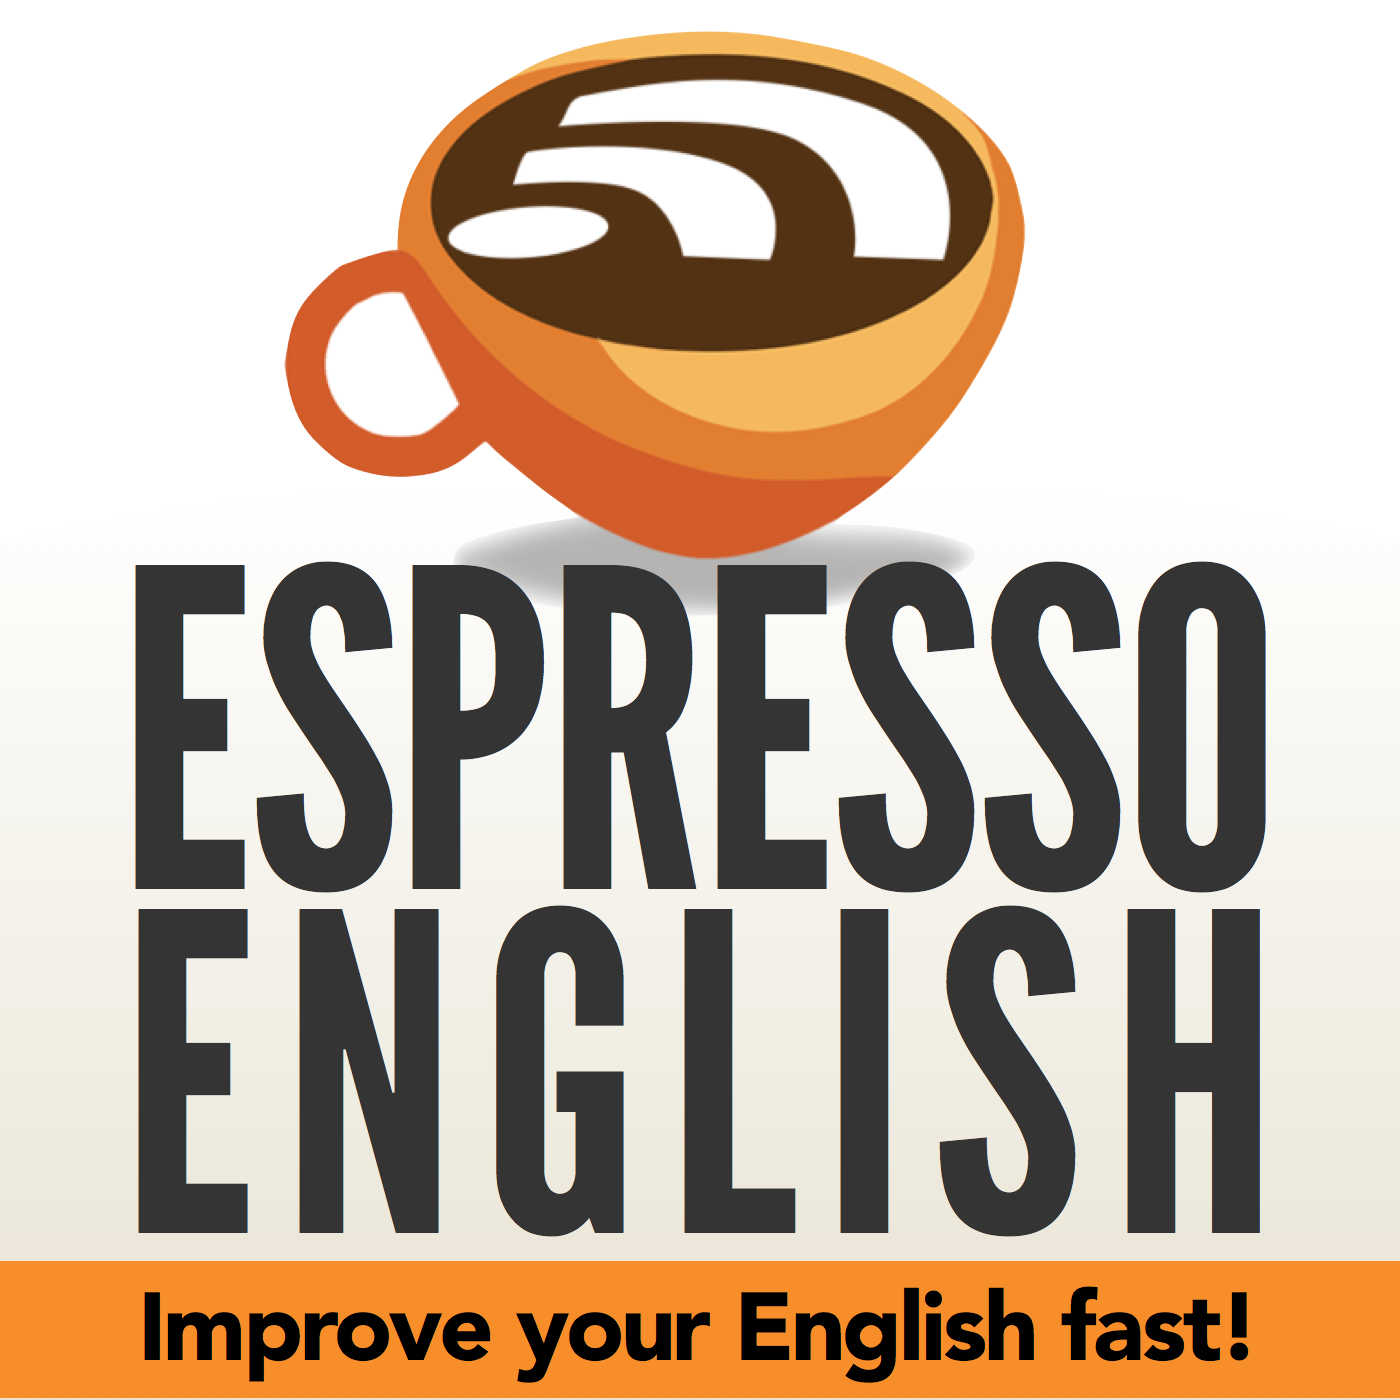 Daily english phrases make yourself at home suit yourself help daily english phrases make yourself at home suit yourself help yourself espresso english podcast podcast solutioingenieria Choice Image